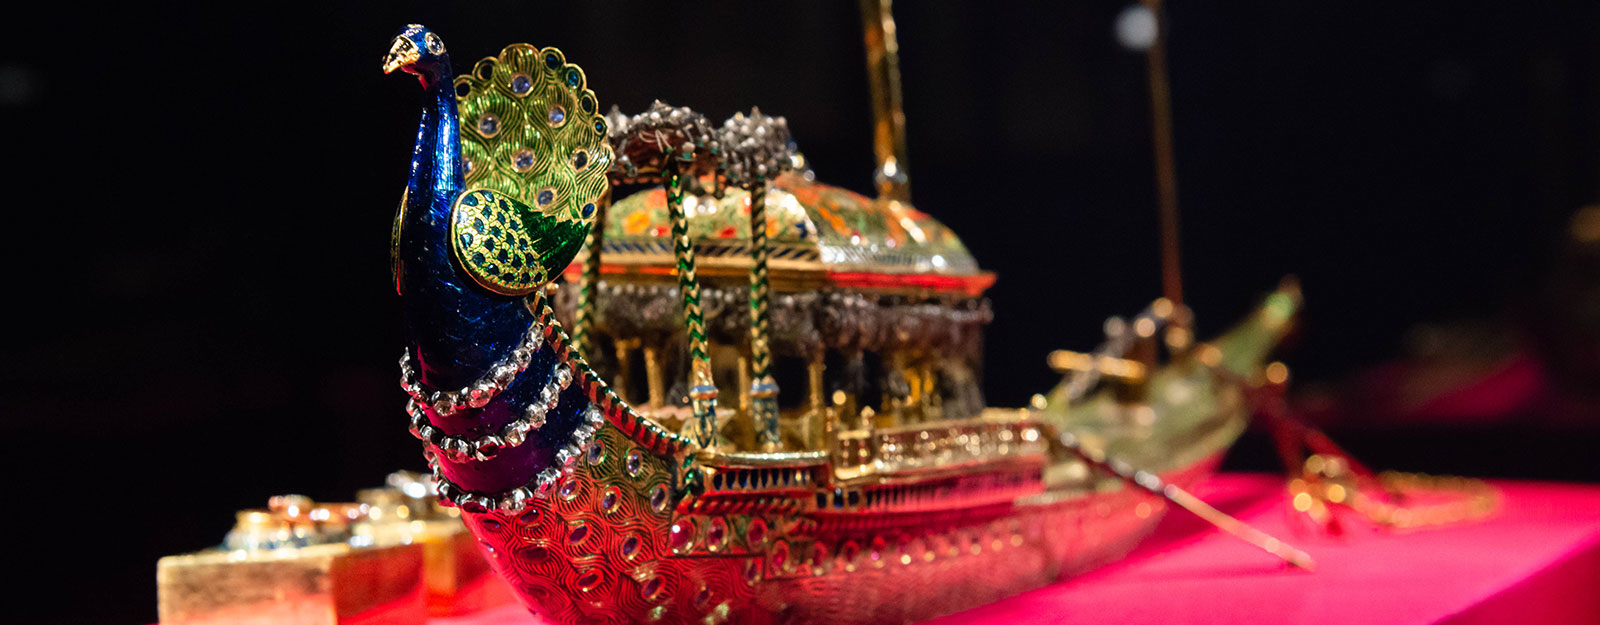 Splendours of the Subcontinent at The Queen's Gallery, Buckingham Palace